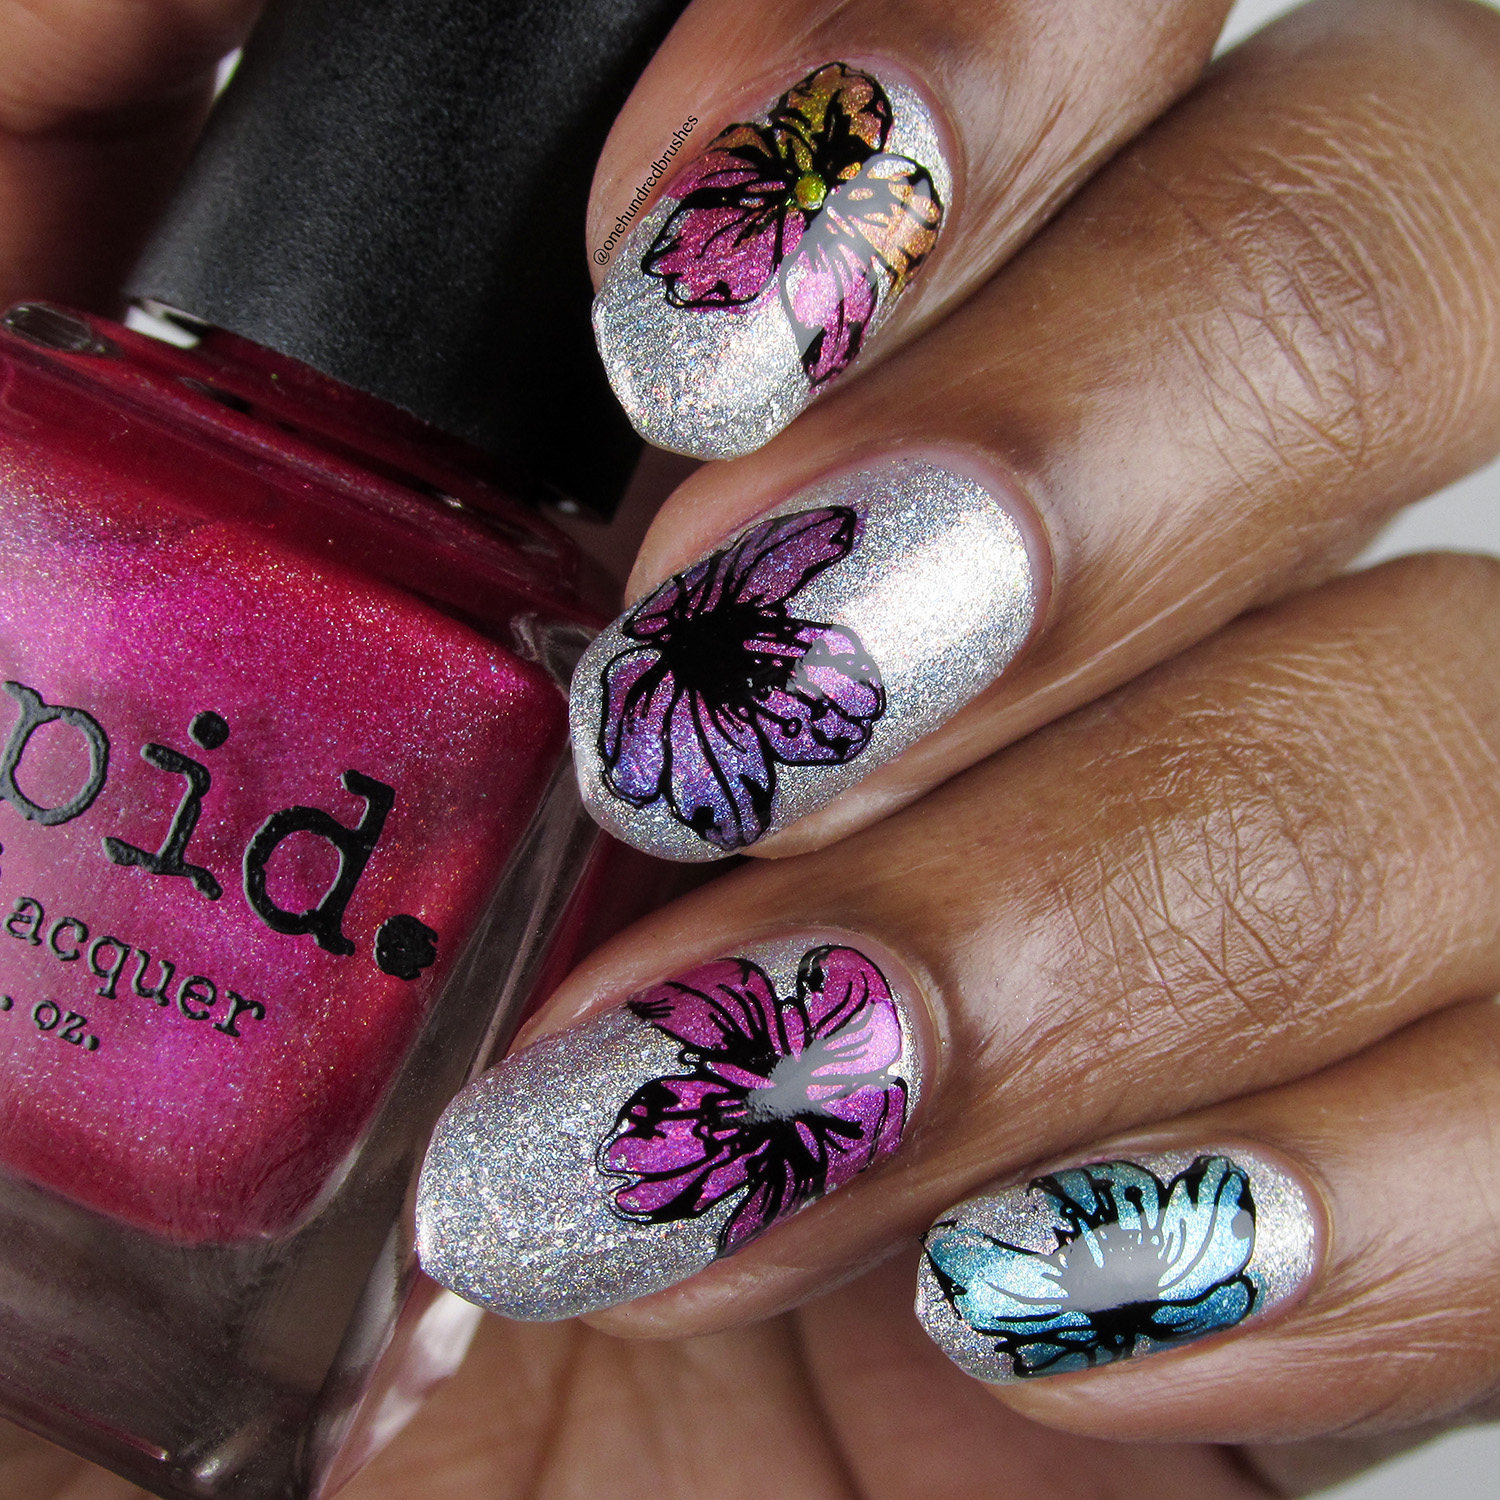 Floral Stamping - bottle - Vapid - April 2018 Spring Release - Uberchic - gradient stamping